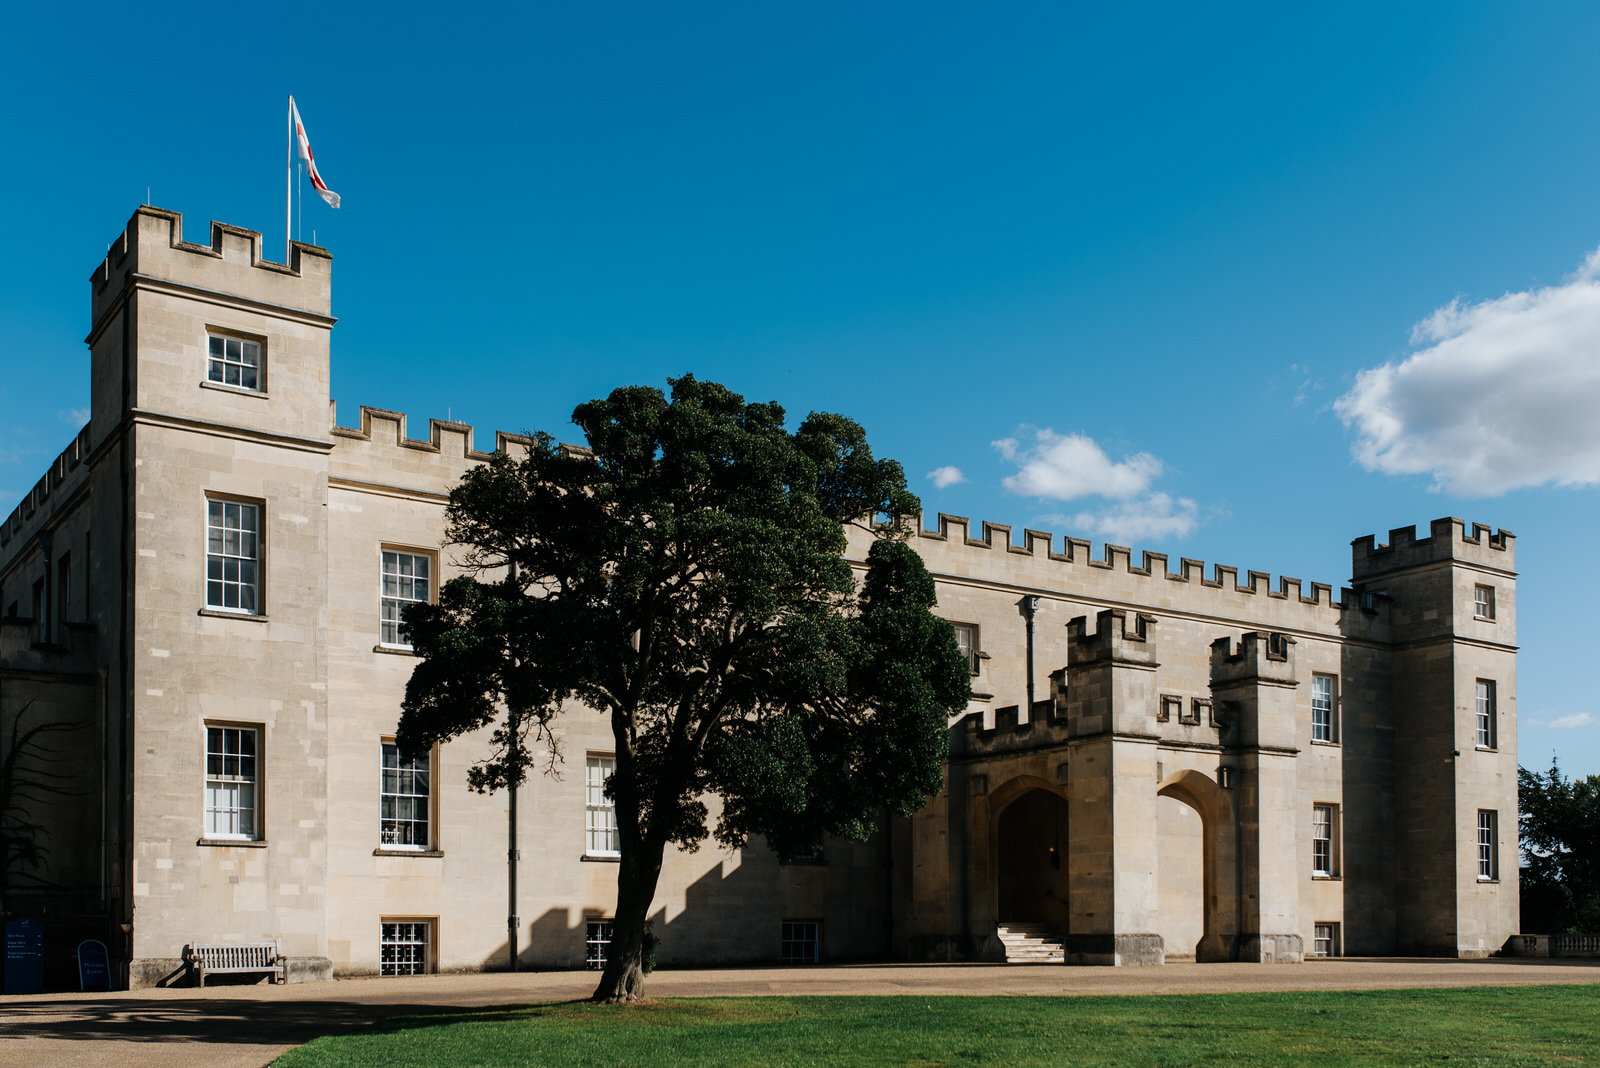 Stage-setting photo of Syon House